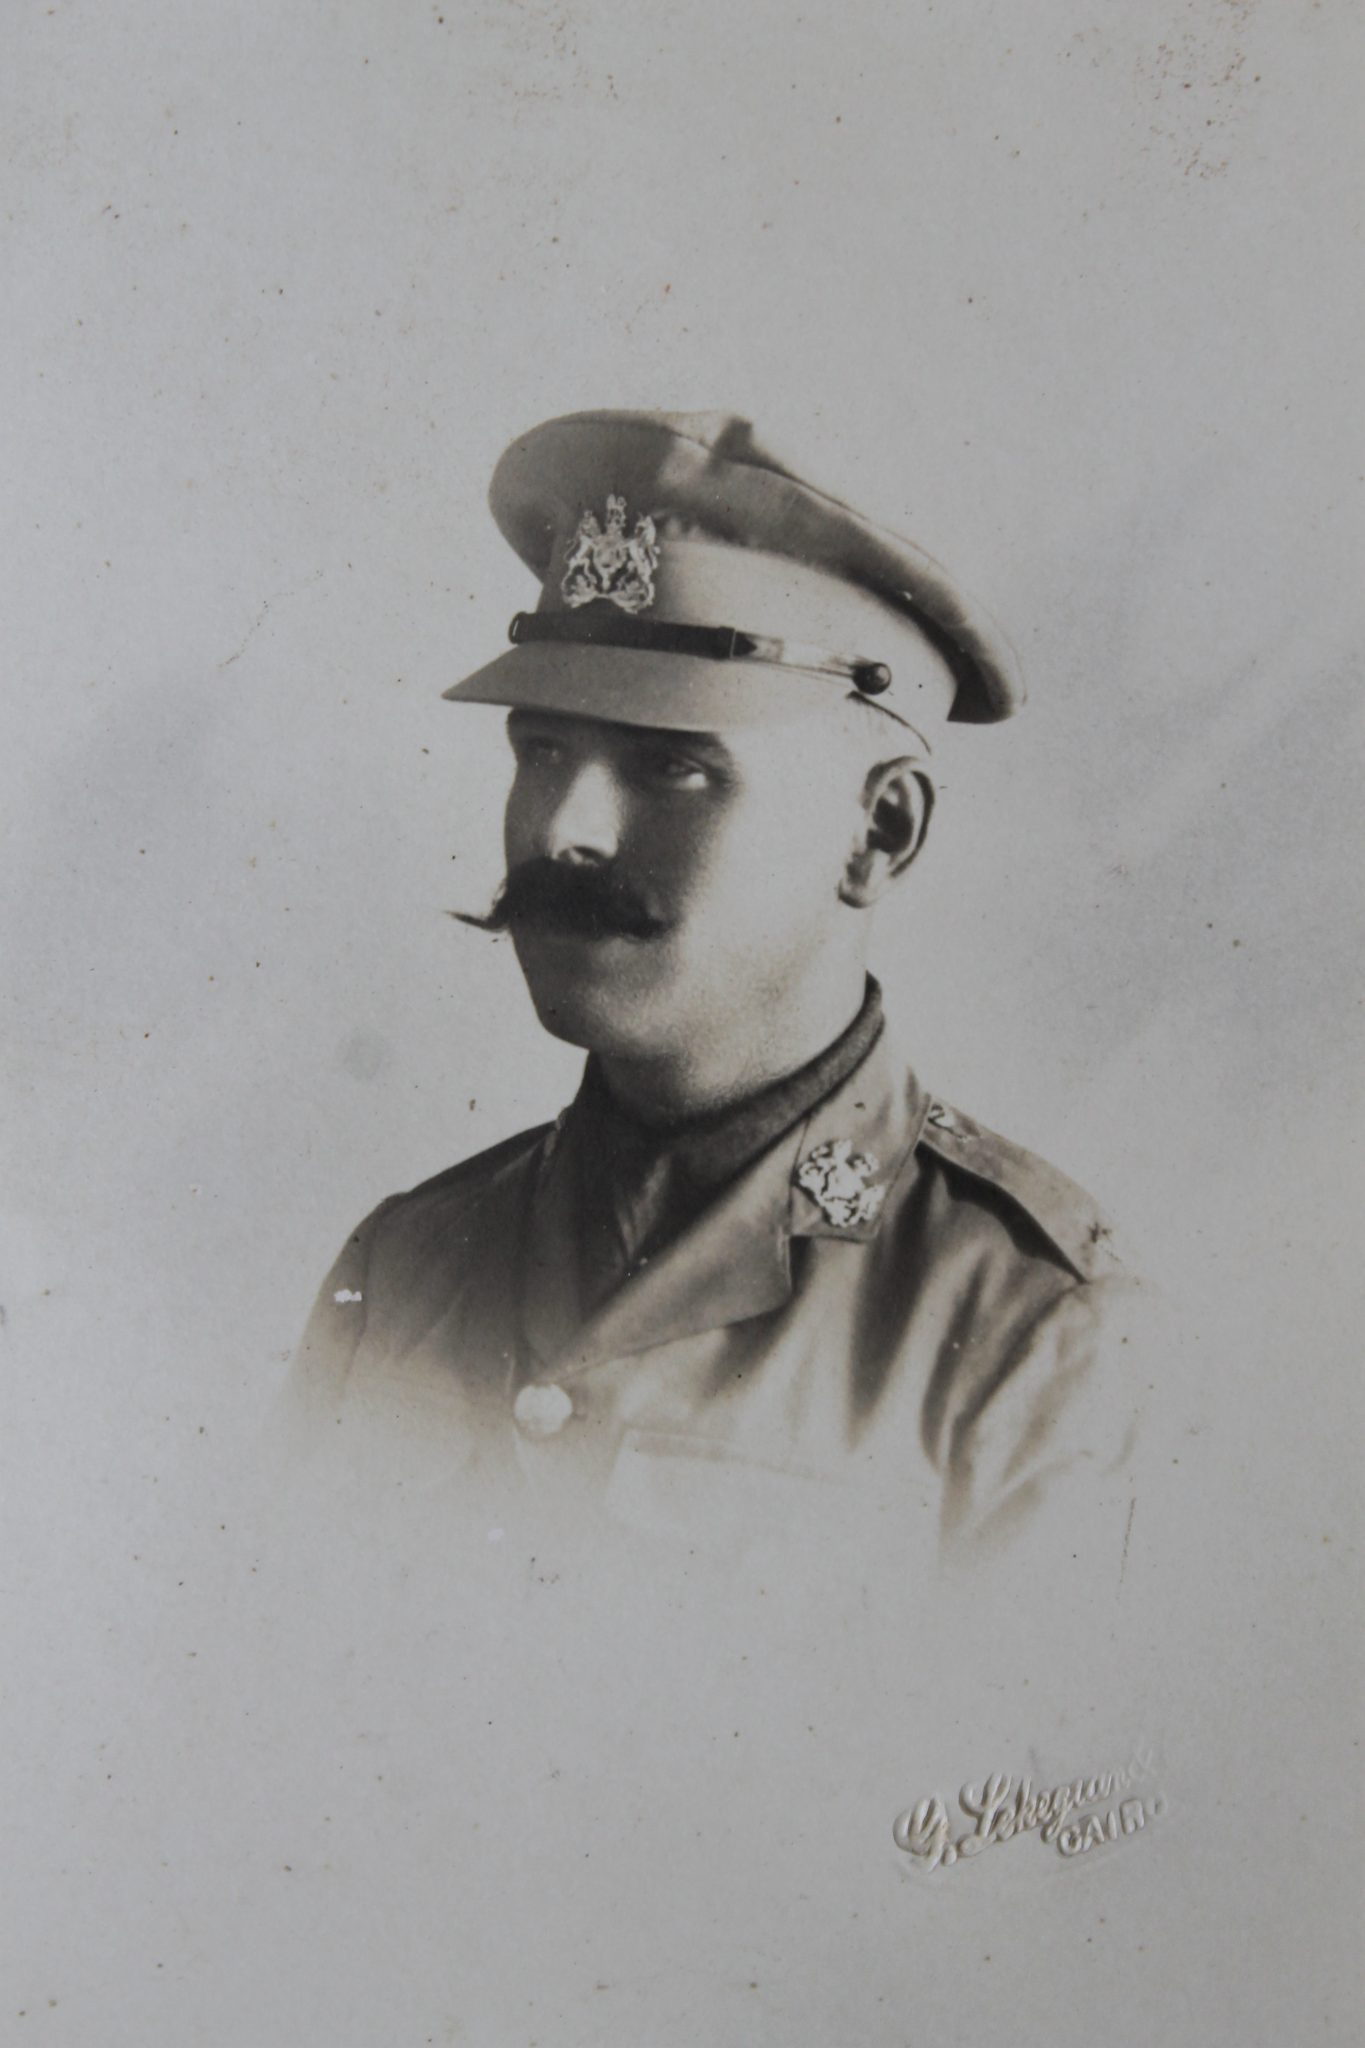 Headshot of Fred Naylor in military uniform